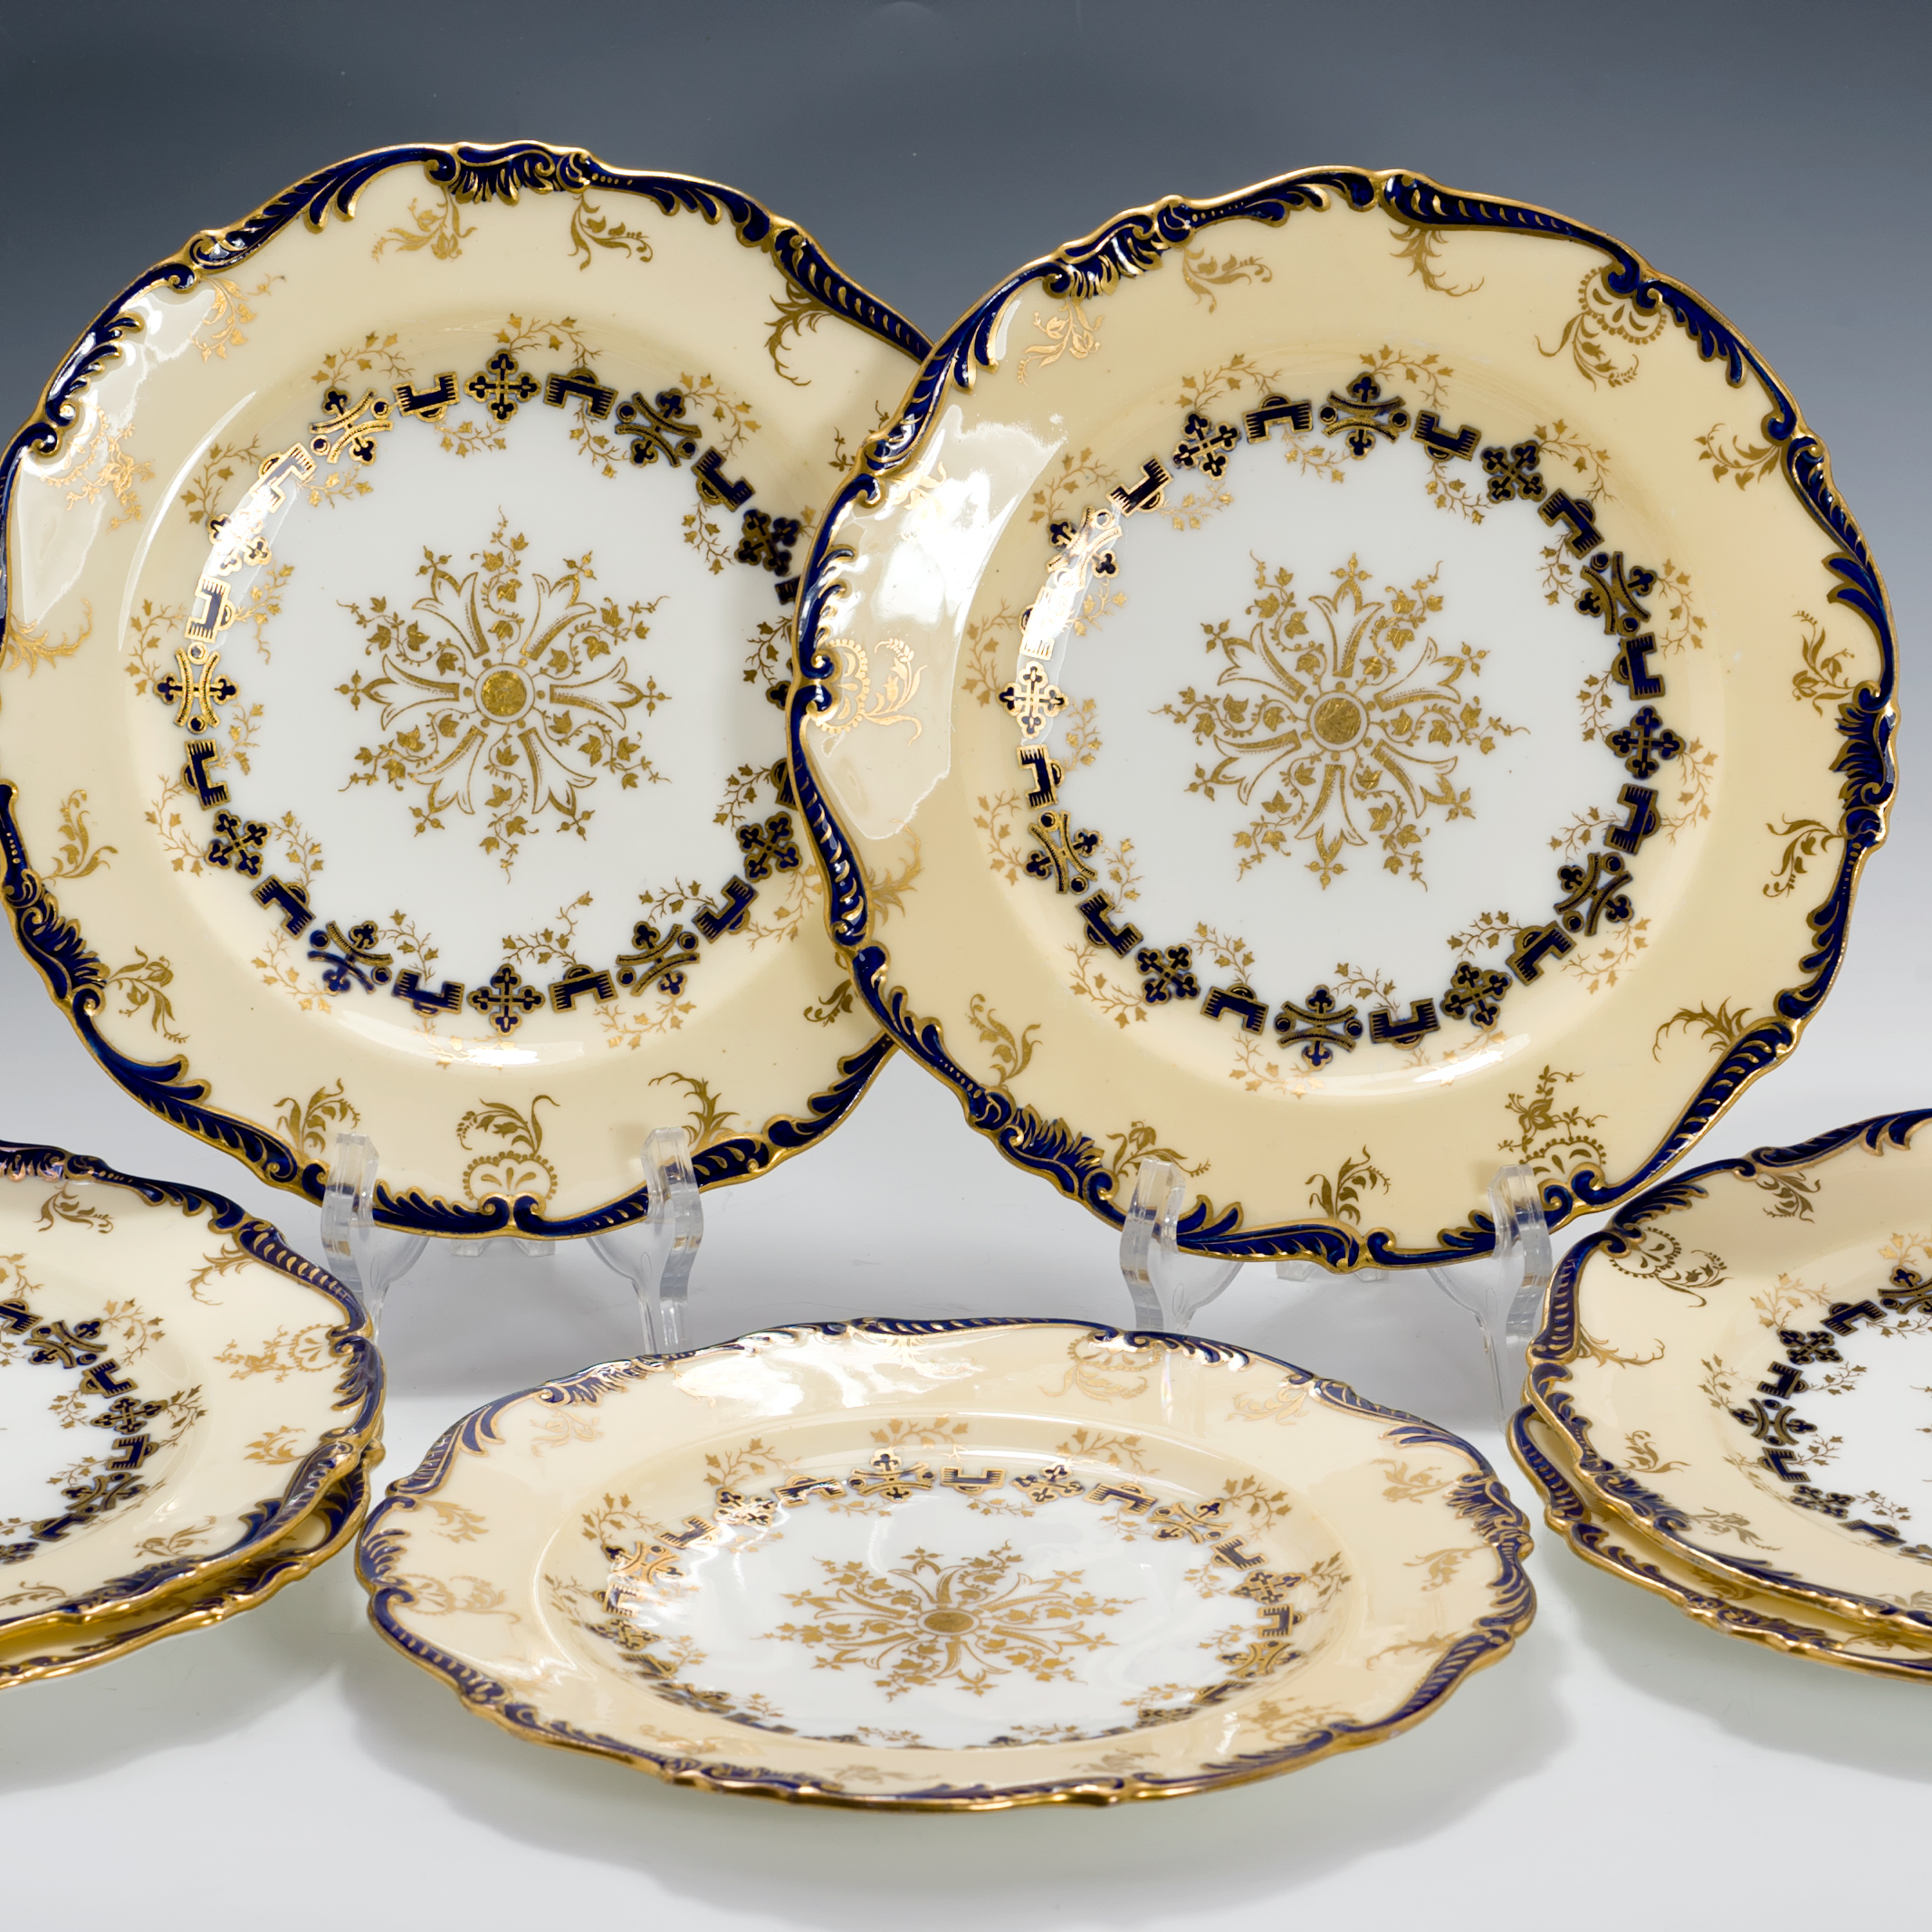 antique coalport pat 7173 fine bone china 7 accent dessert plates ebay. Black Bedroom Furniture Sets. Home Design Ideas